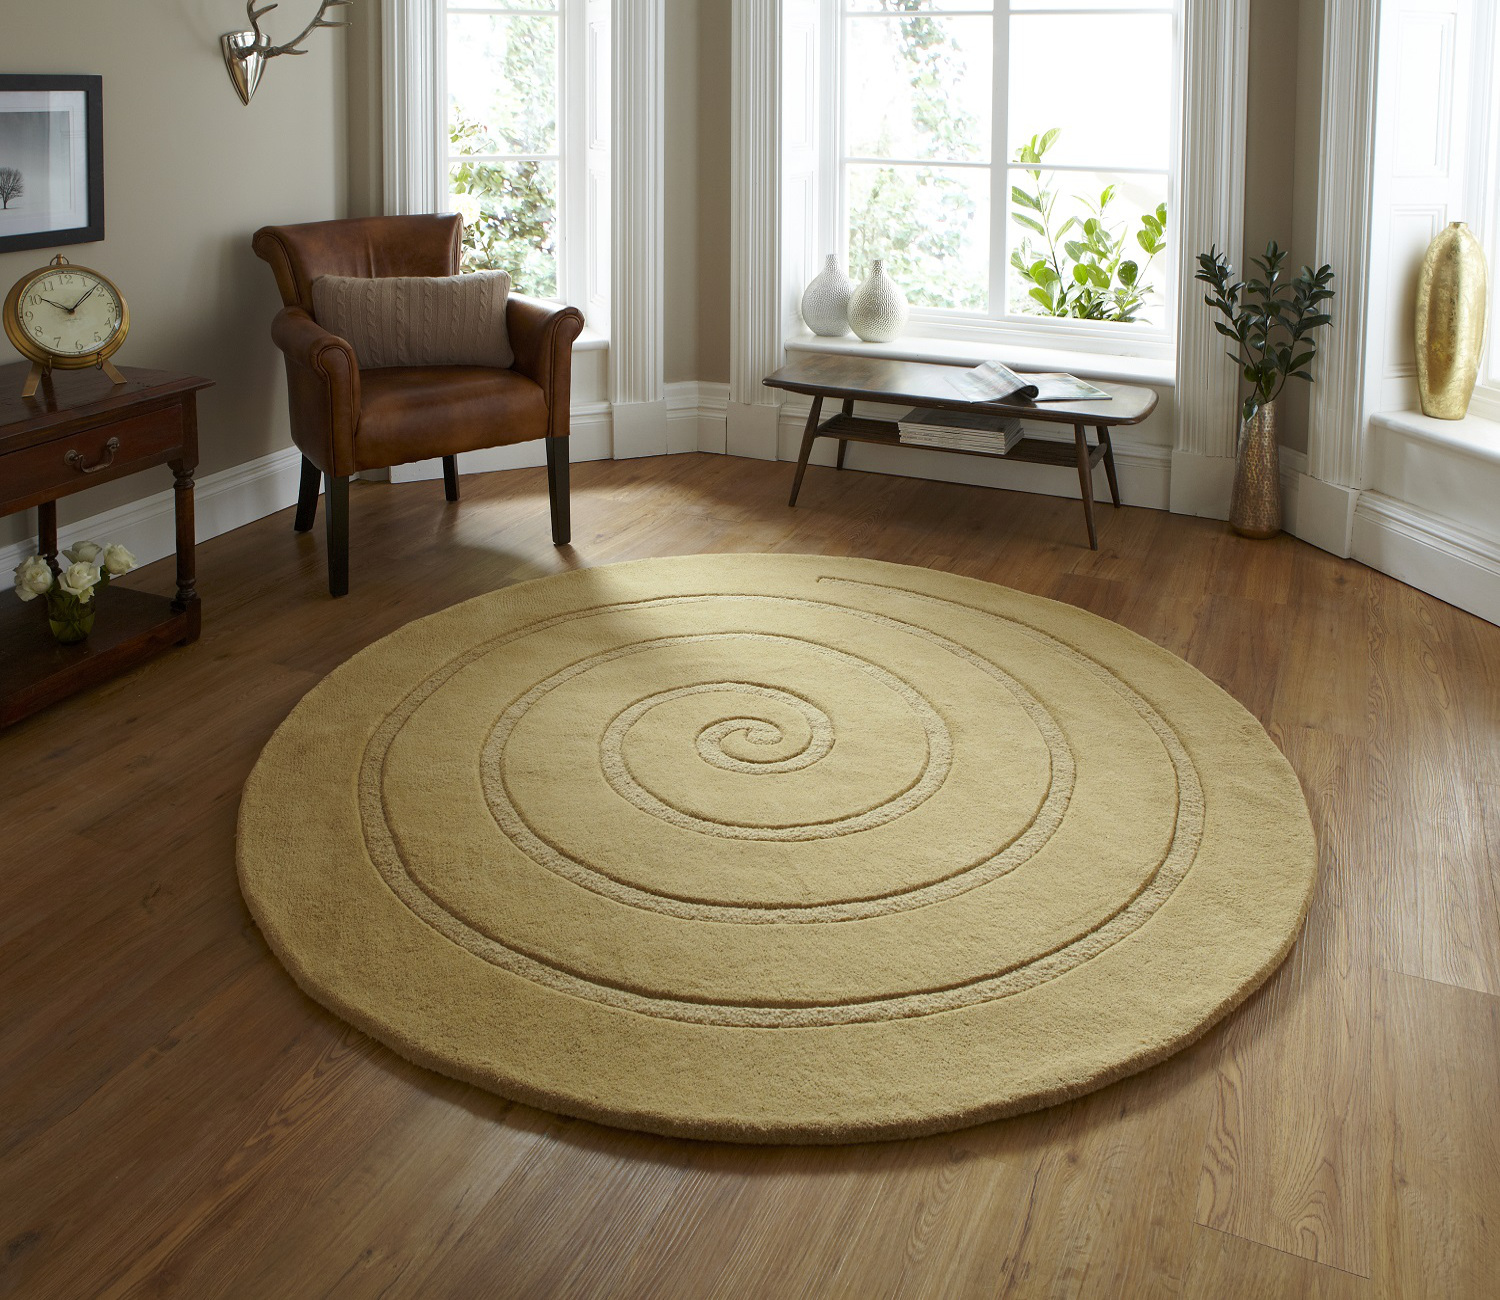 Spiral hand tufted 100 wool circular rug modern textured for Designer floor rugs